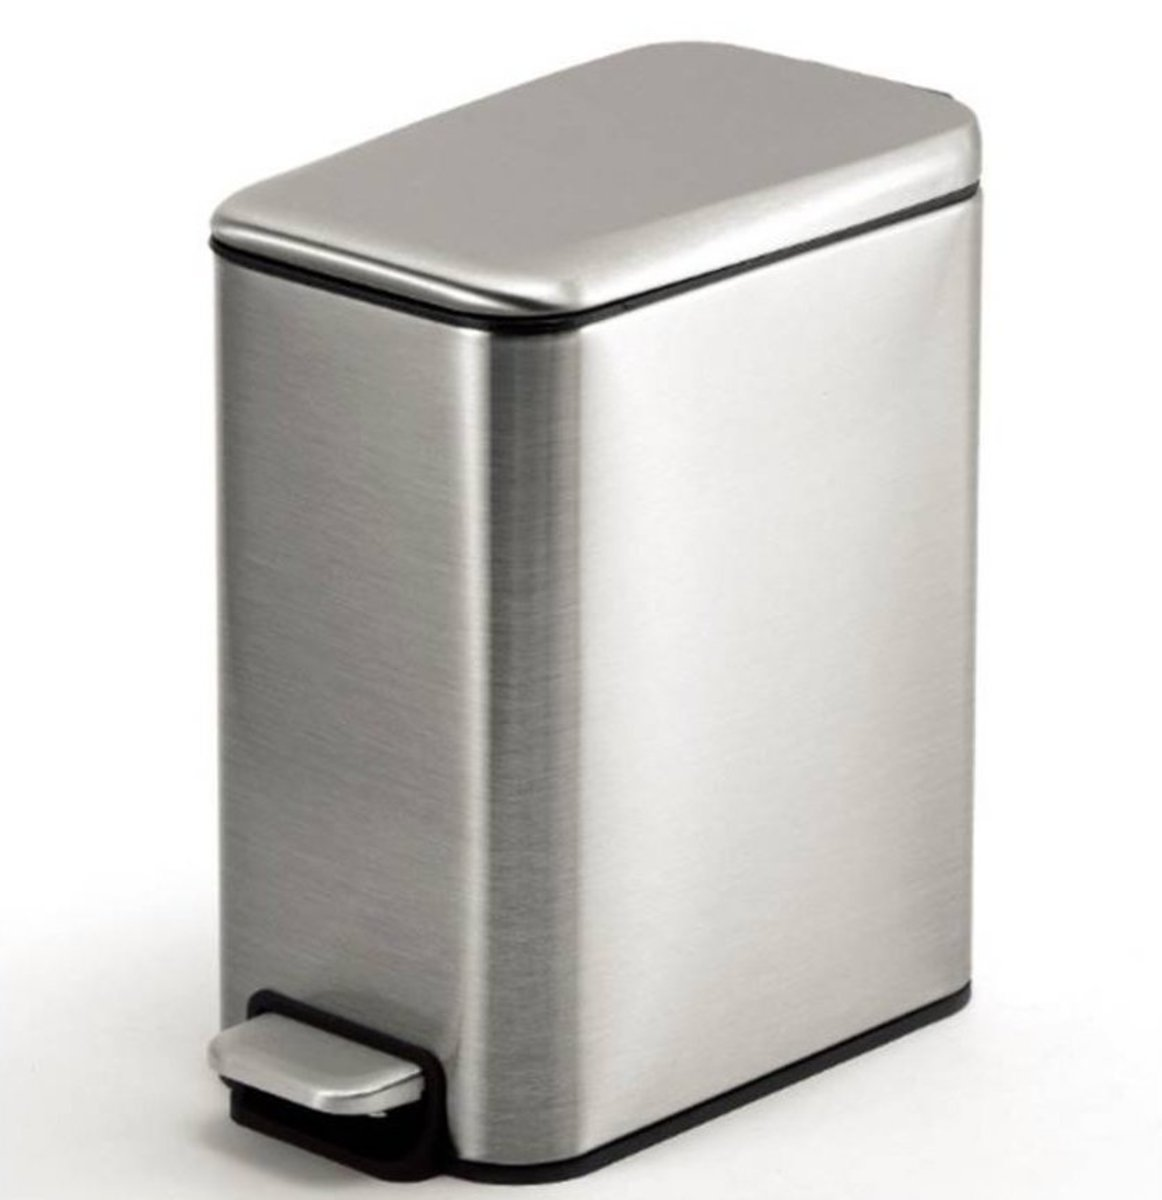 Stainless steel 5L trash can SP0084